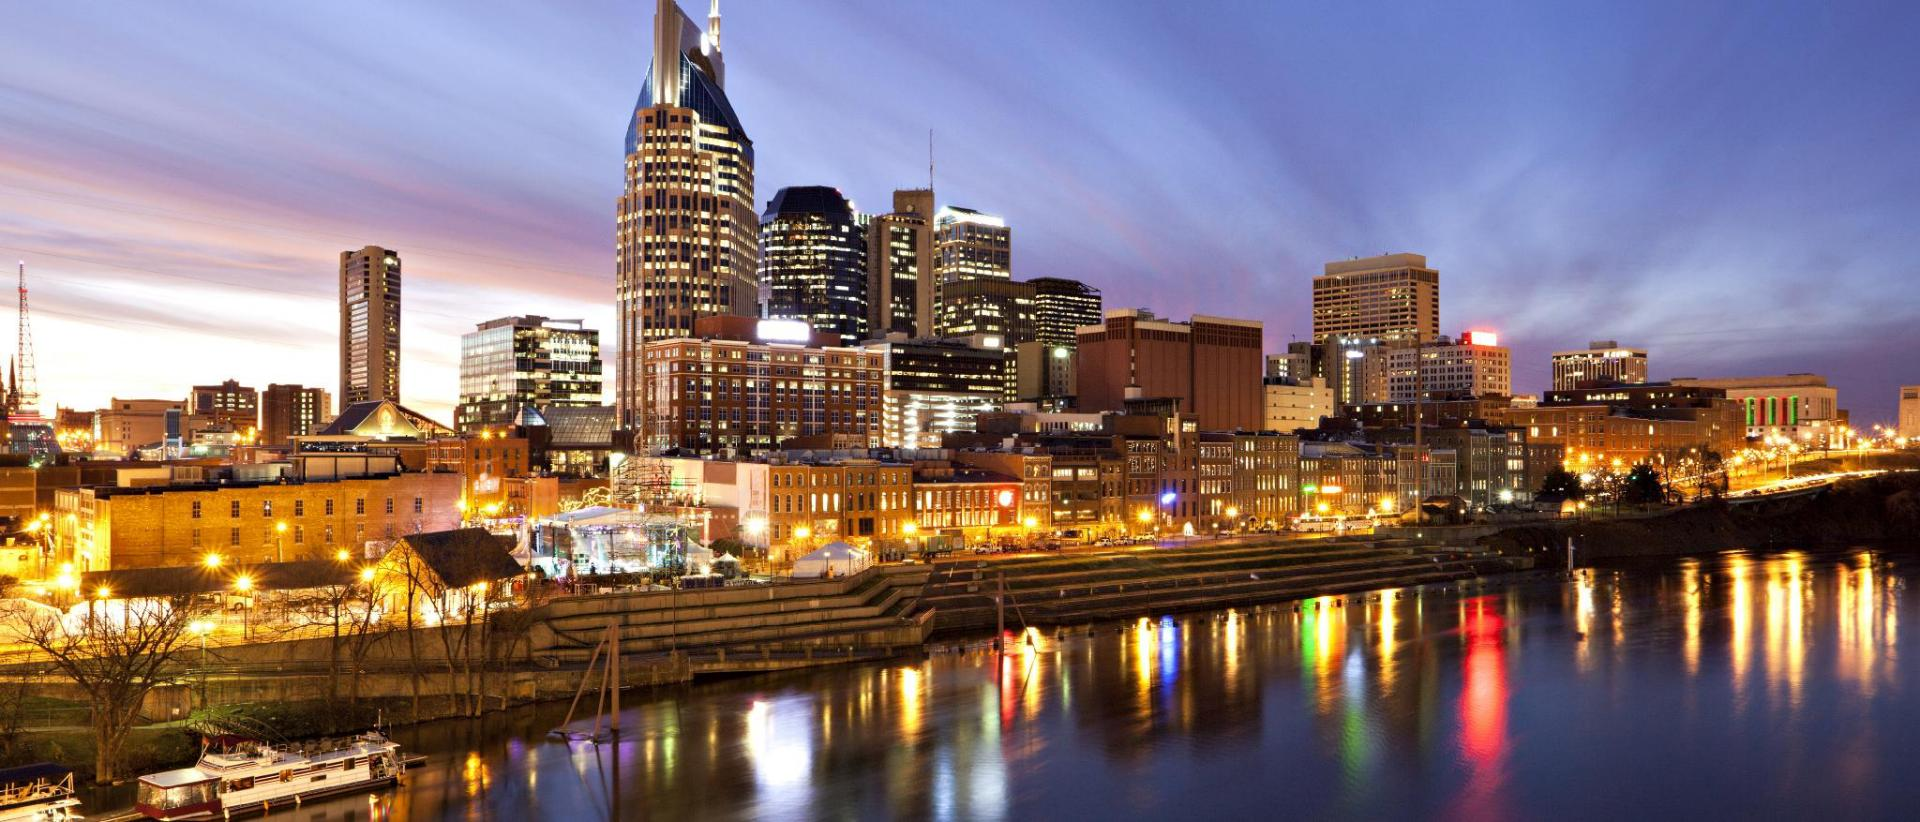 Hotels near Country Music Hall of Fame and Museum, Nashville (TN) - BEST  HOTEL RATES Near Museums and Art Galleries, Nashville (TN) - United States